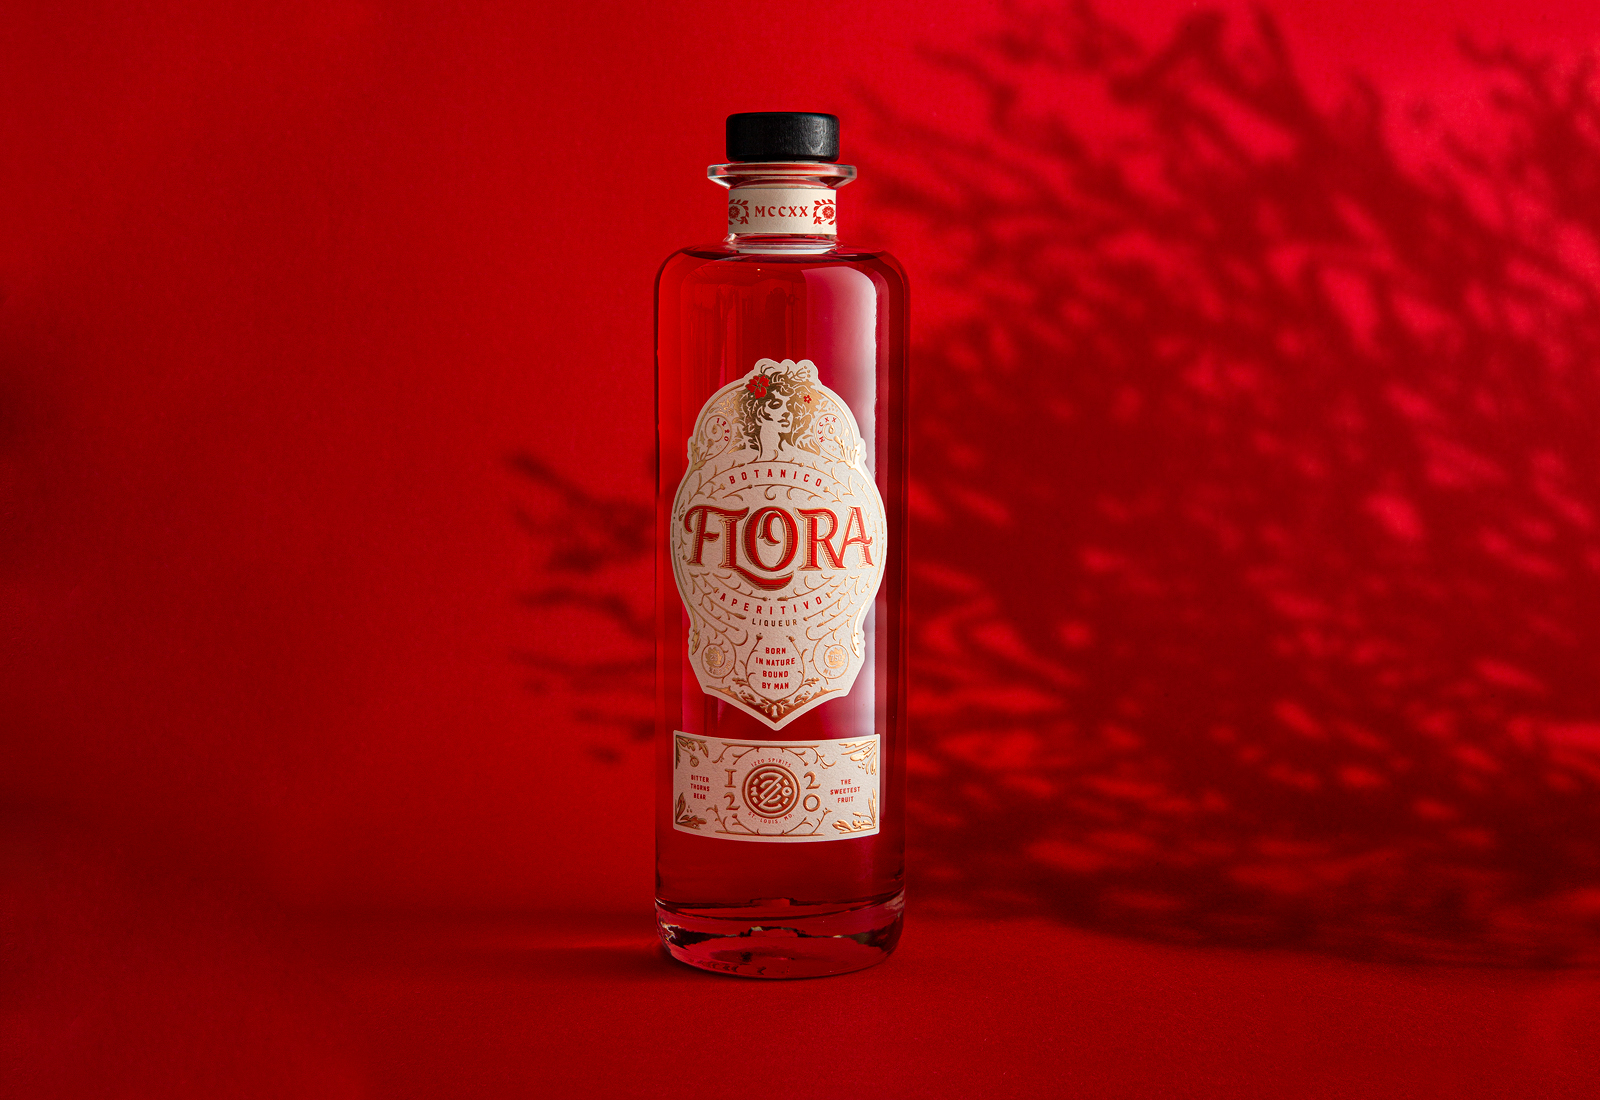 Flora bottle, red background, shadow